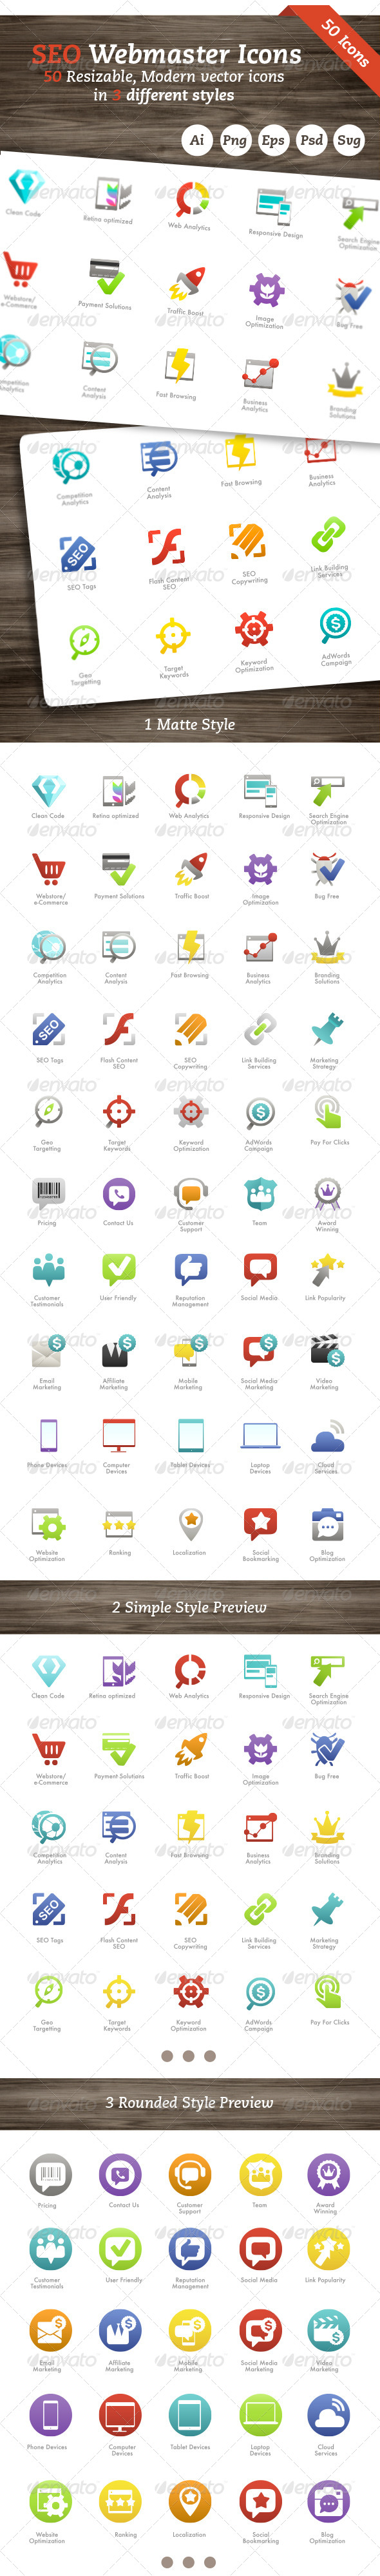 GraphicRiver SEO Webmaster Icons 7568772